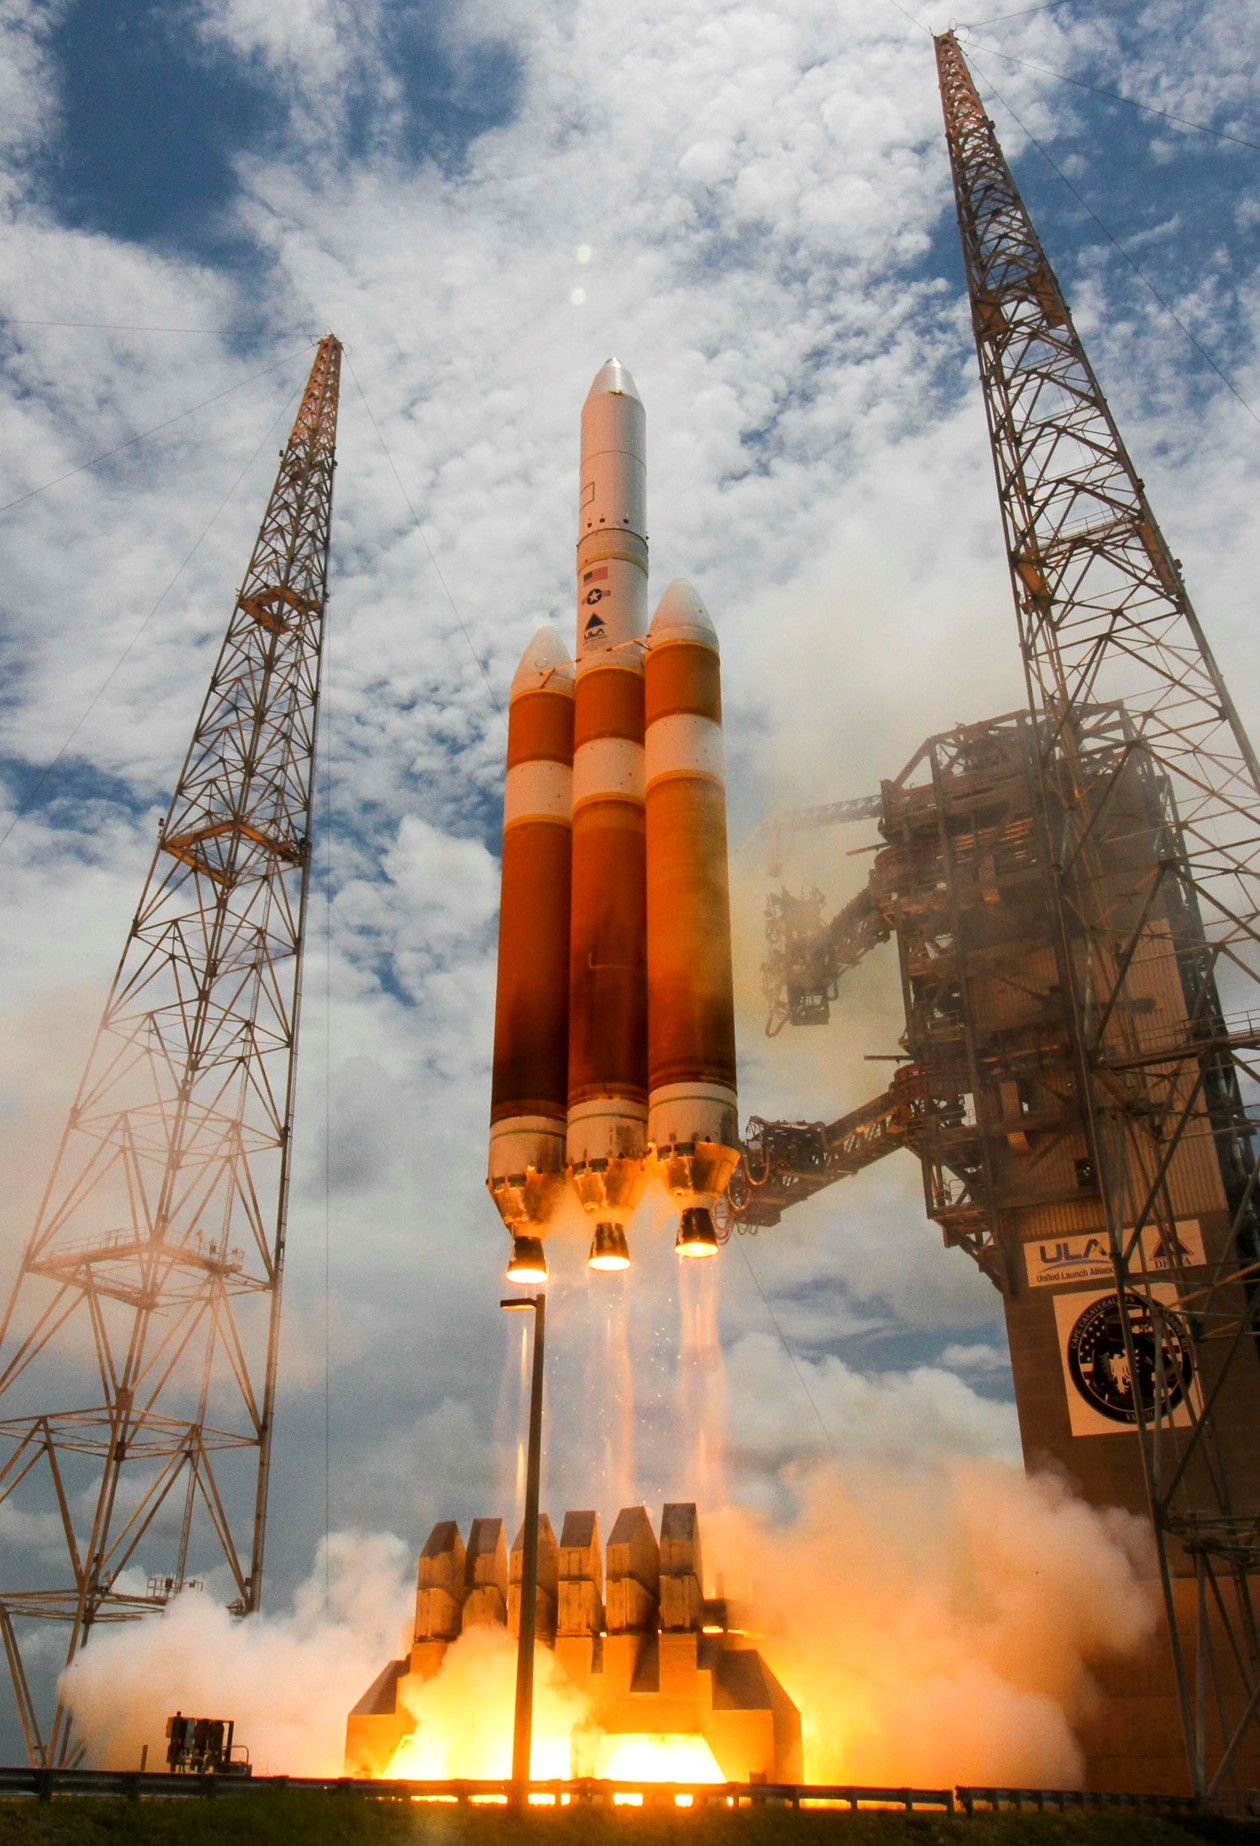 11 juin 2016 - Delta 4 Heavy - Cap Canaveral - satellite militaire - NROL 37 - National Reconnaissance Office - ULA